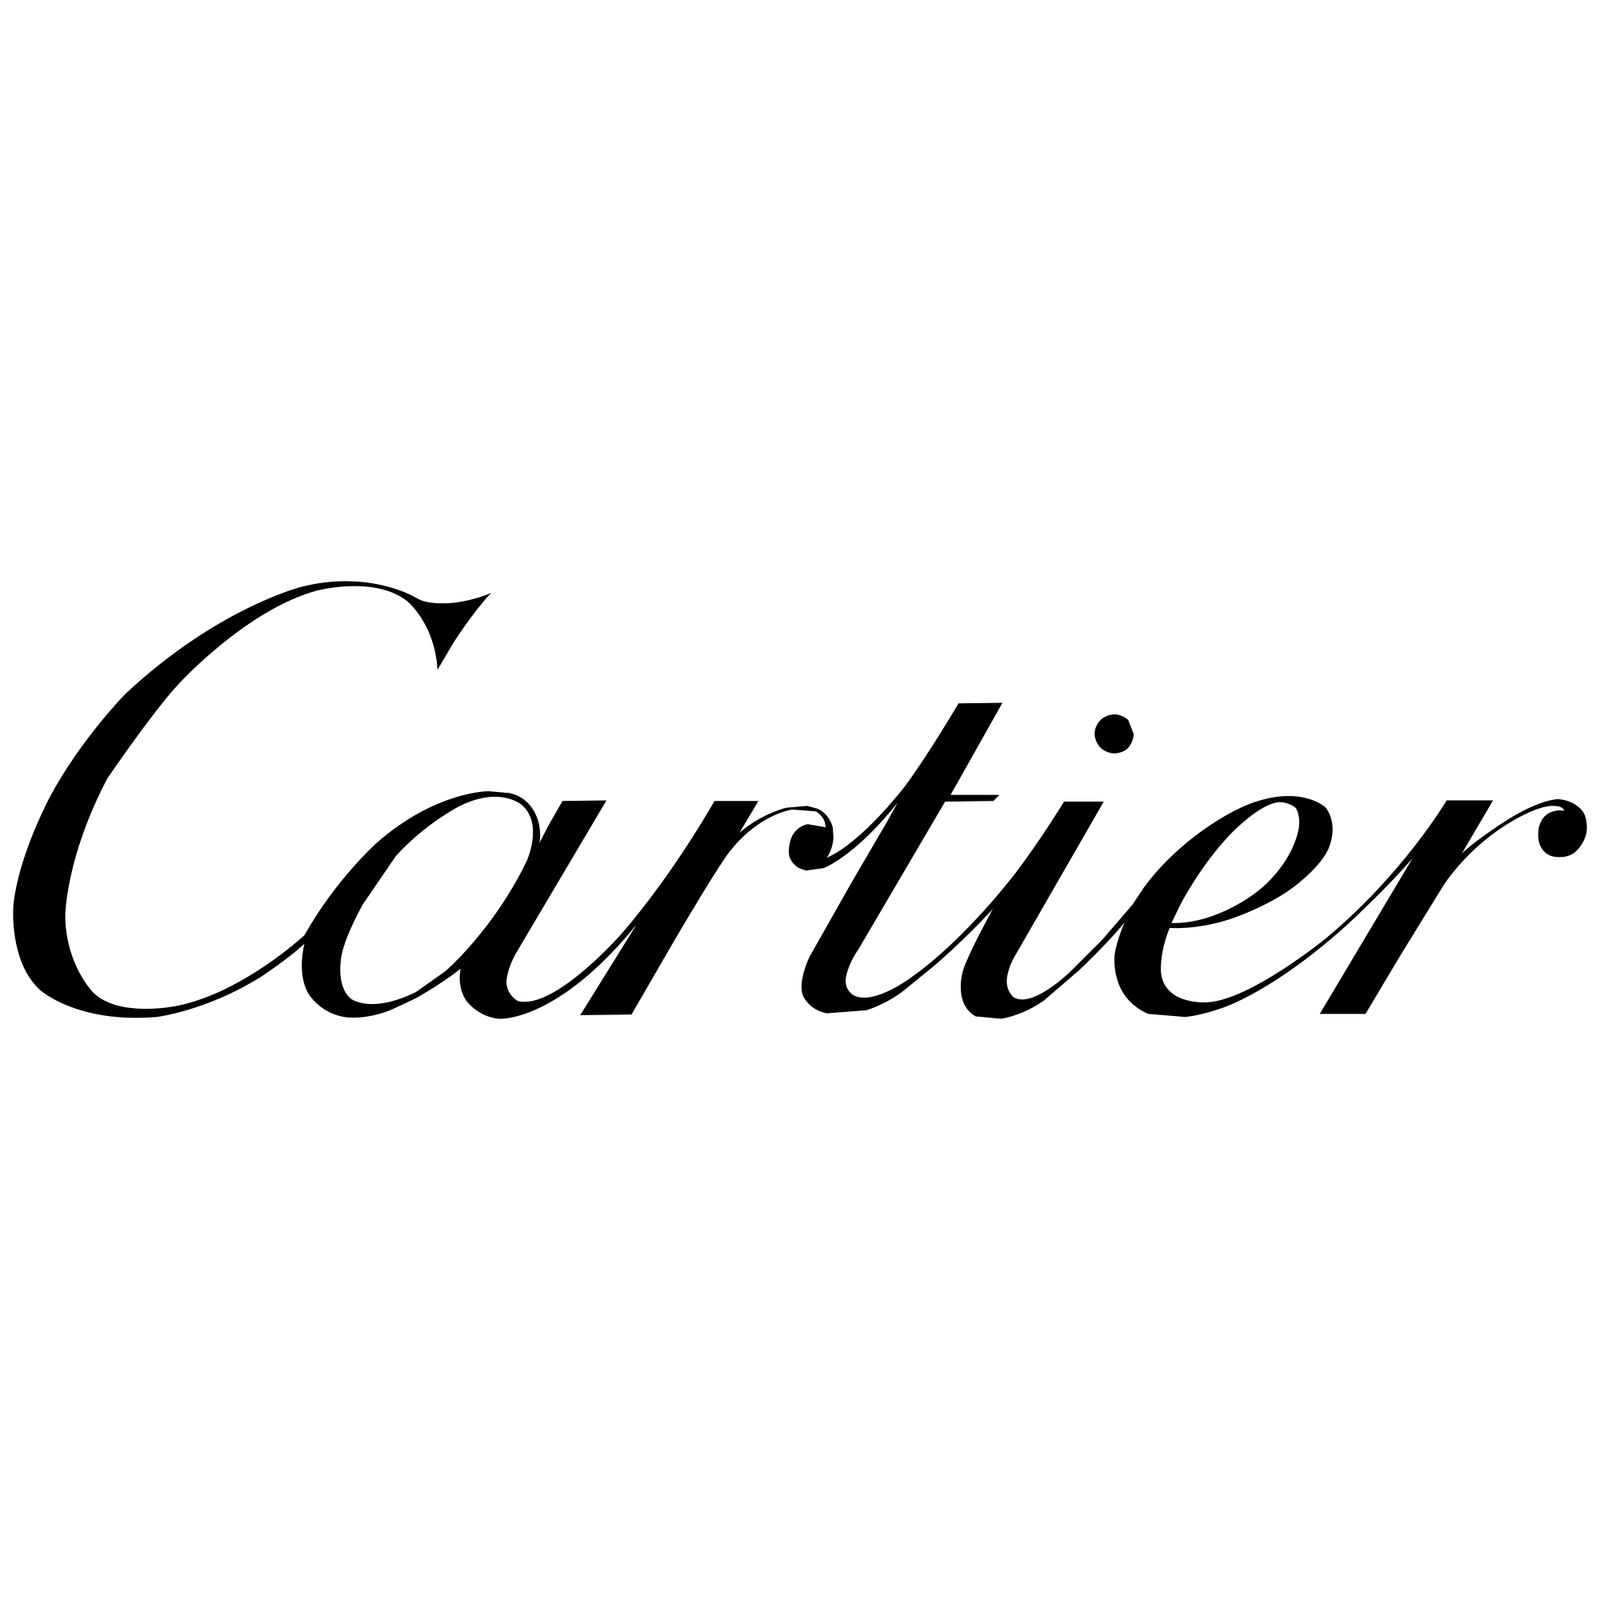 Cartier (Image 1)